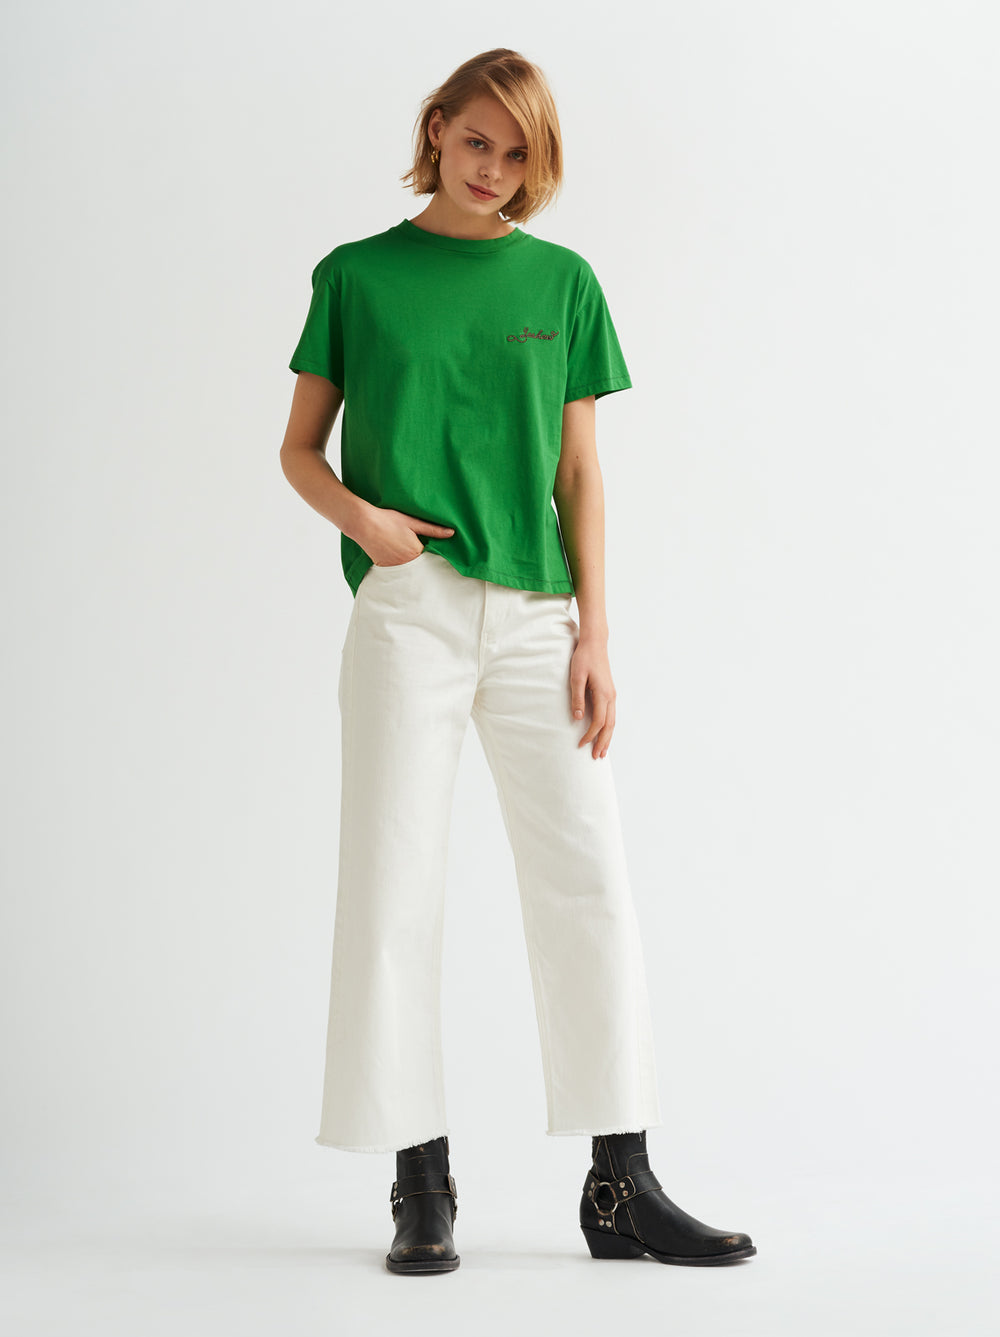 Yeehaw Printed Green Cotton T-shirt by KITRI Studio